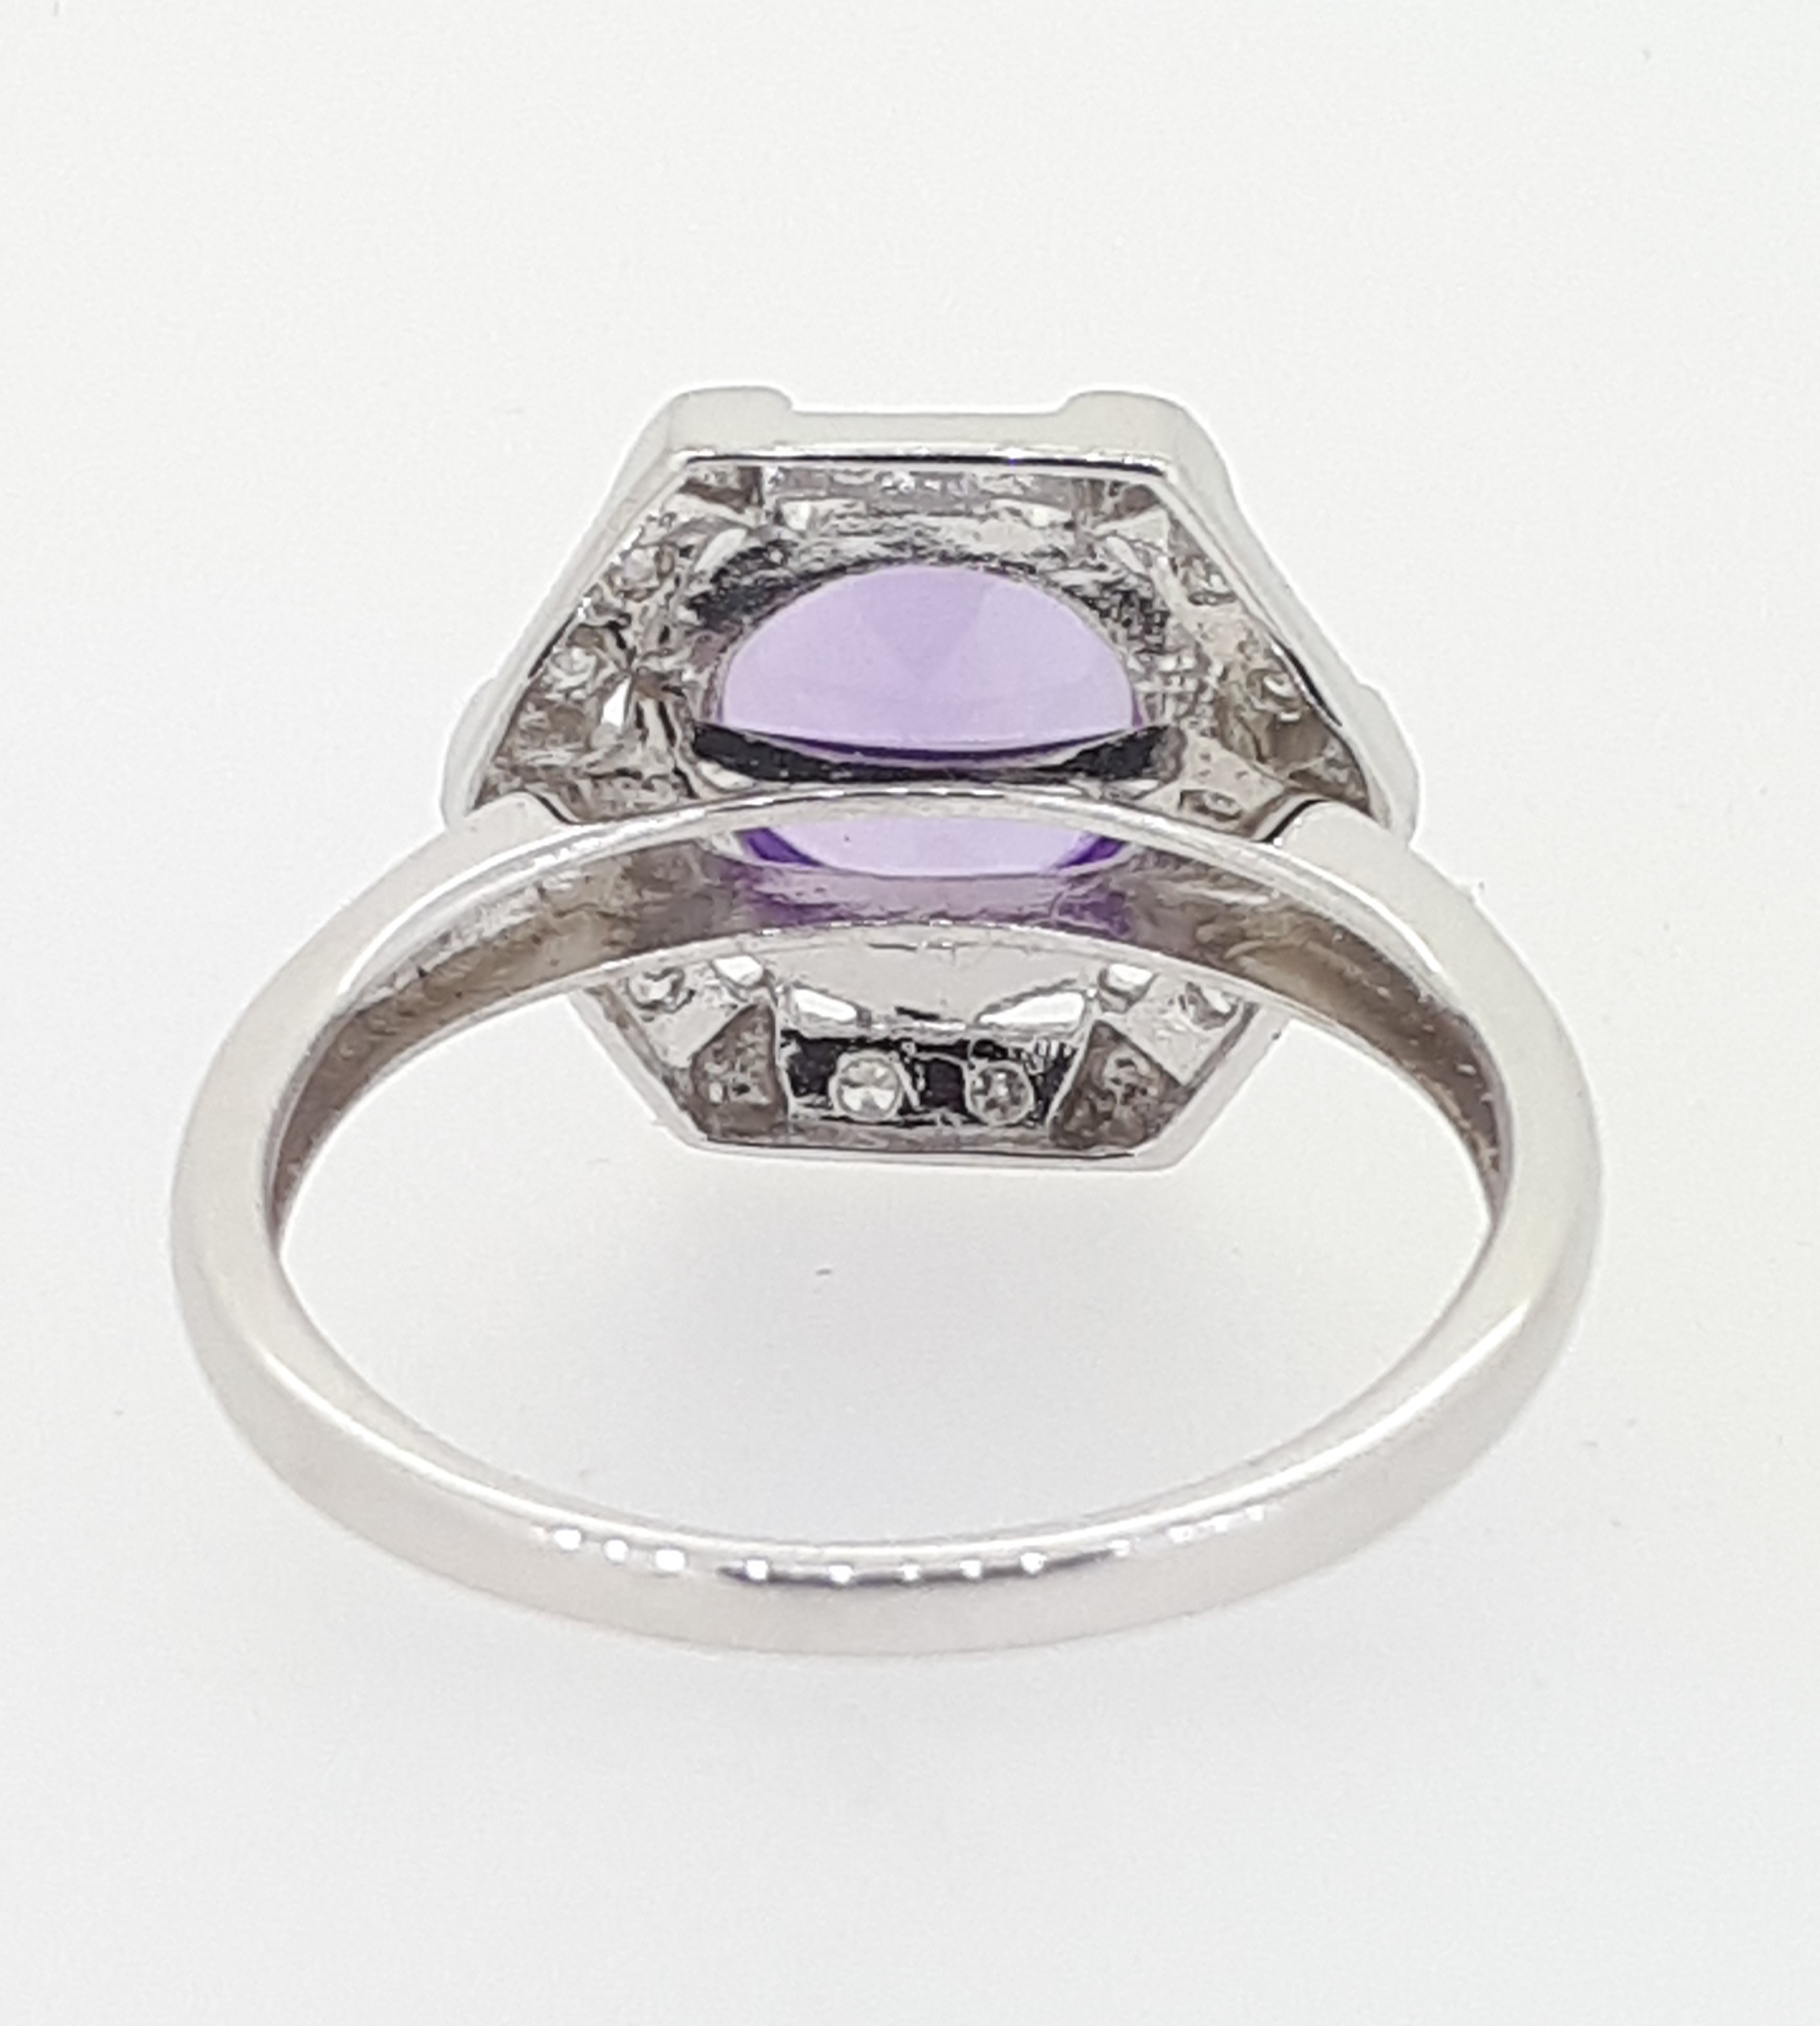 9ct White Gold Cabochon Amethyst & Diamond Ring - Image 4 of 4